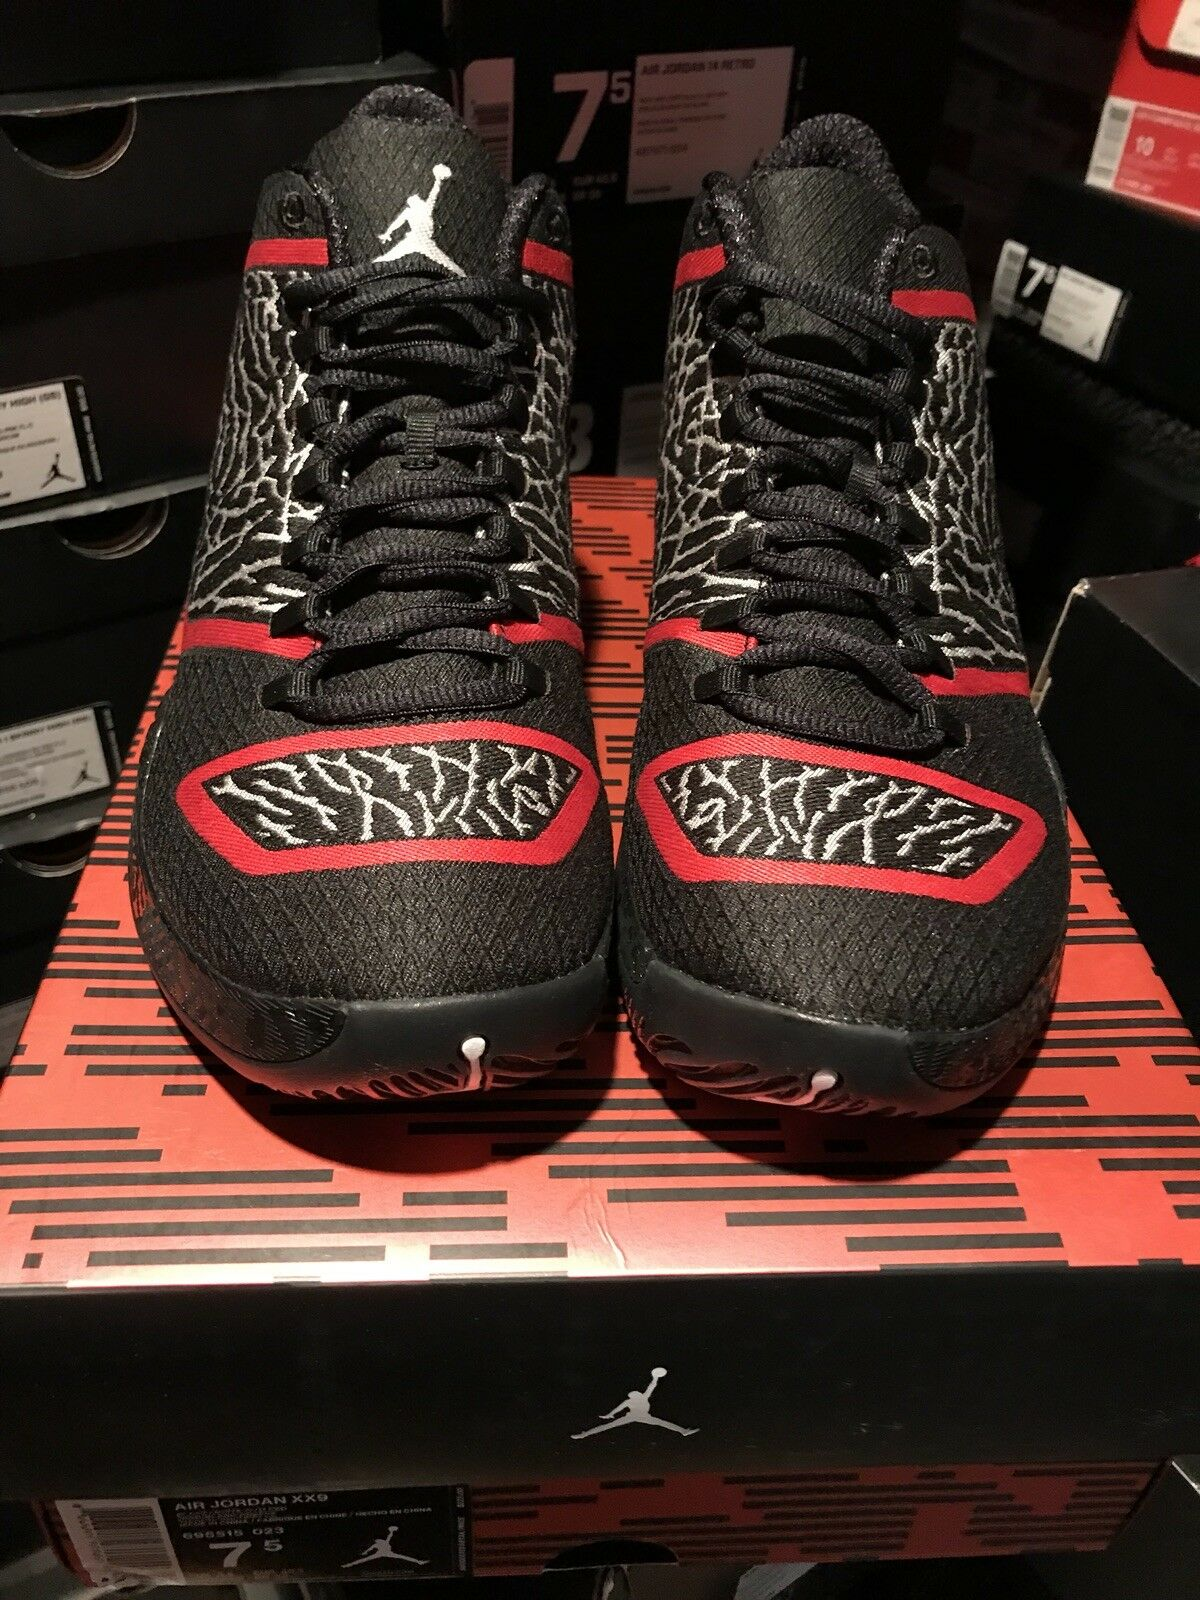 NIKE AIR JORDAN XX9 29 BLACK BRED ELEPHANT 695515 023 Price reduction Great discount